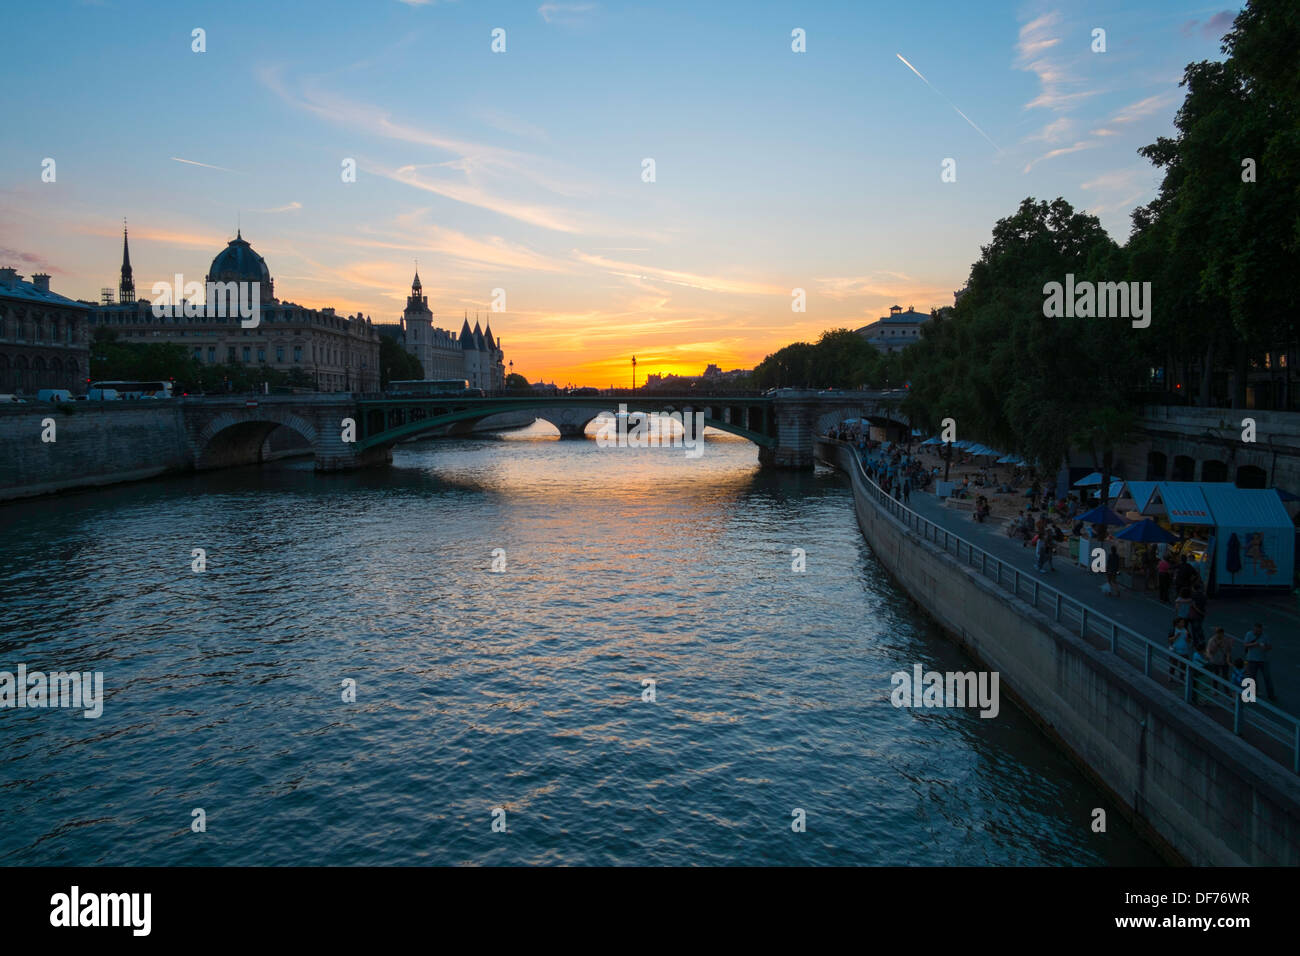 Sunset over the Seine, Paris, France - Stock Image